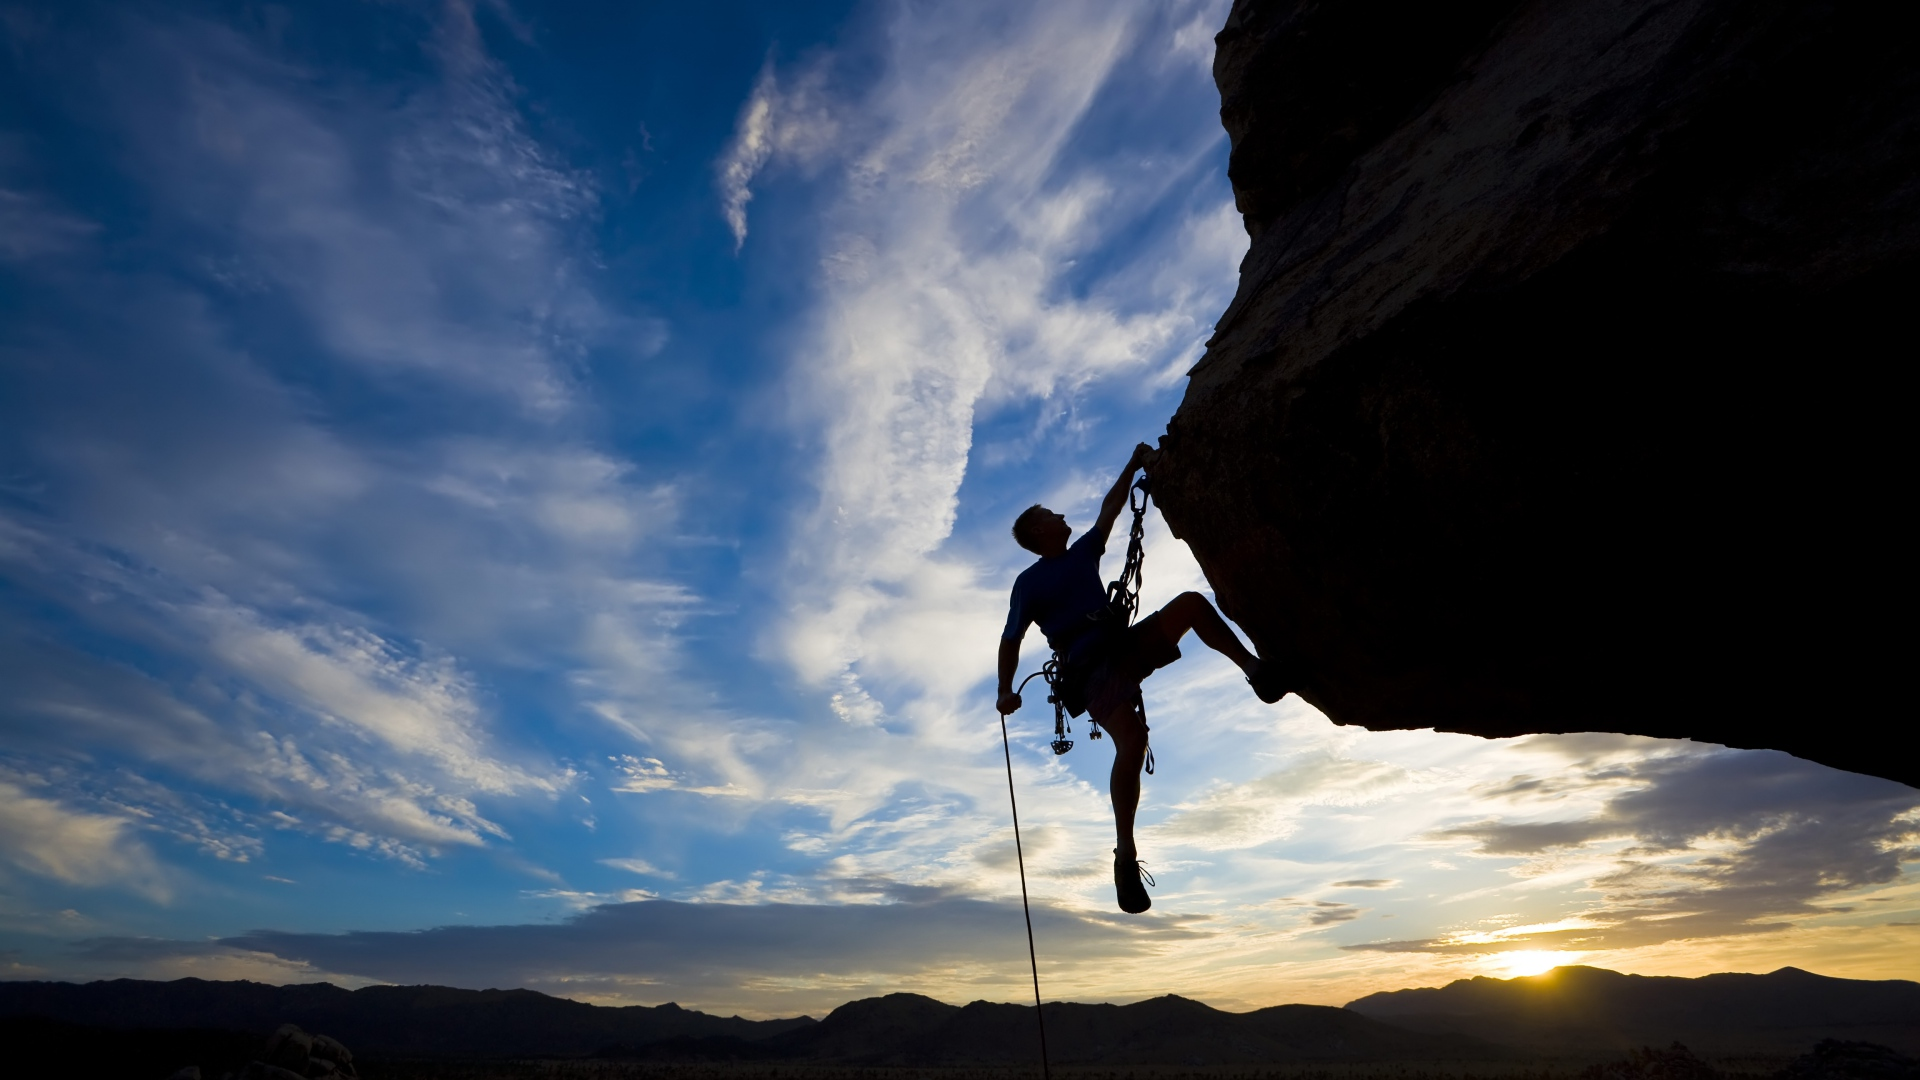 Download Wallpaper 1920x1080 Climber Extreme Silhouette